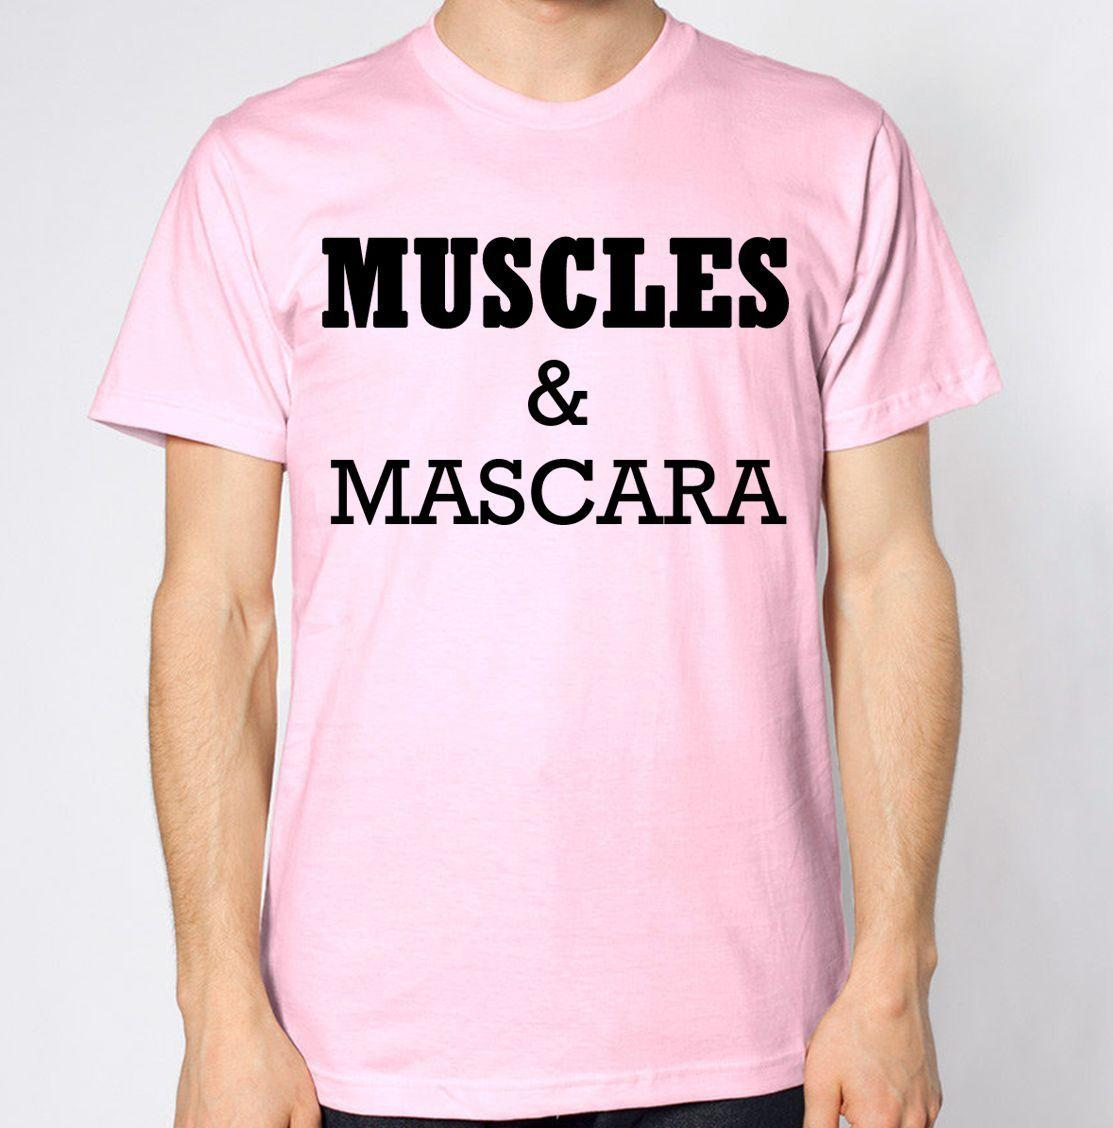 8857ce16 Muscles And Mascara T Shirt Hipster Tumblr Geek Funny Joke Novelty Gym  BodybuildFunny Unisex Casual Tee Gift Tshirt Designs T Shirt Design  Template From ...